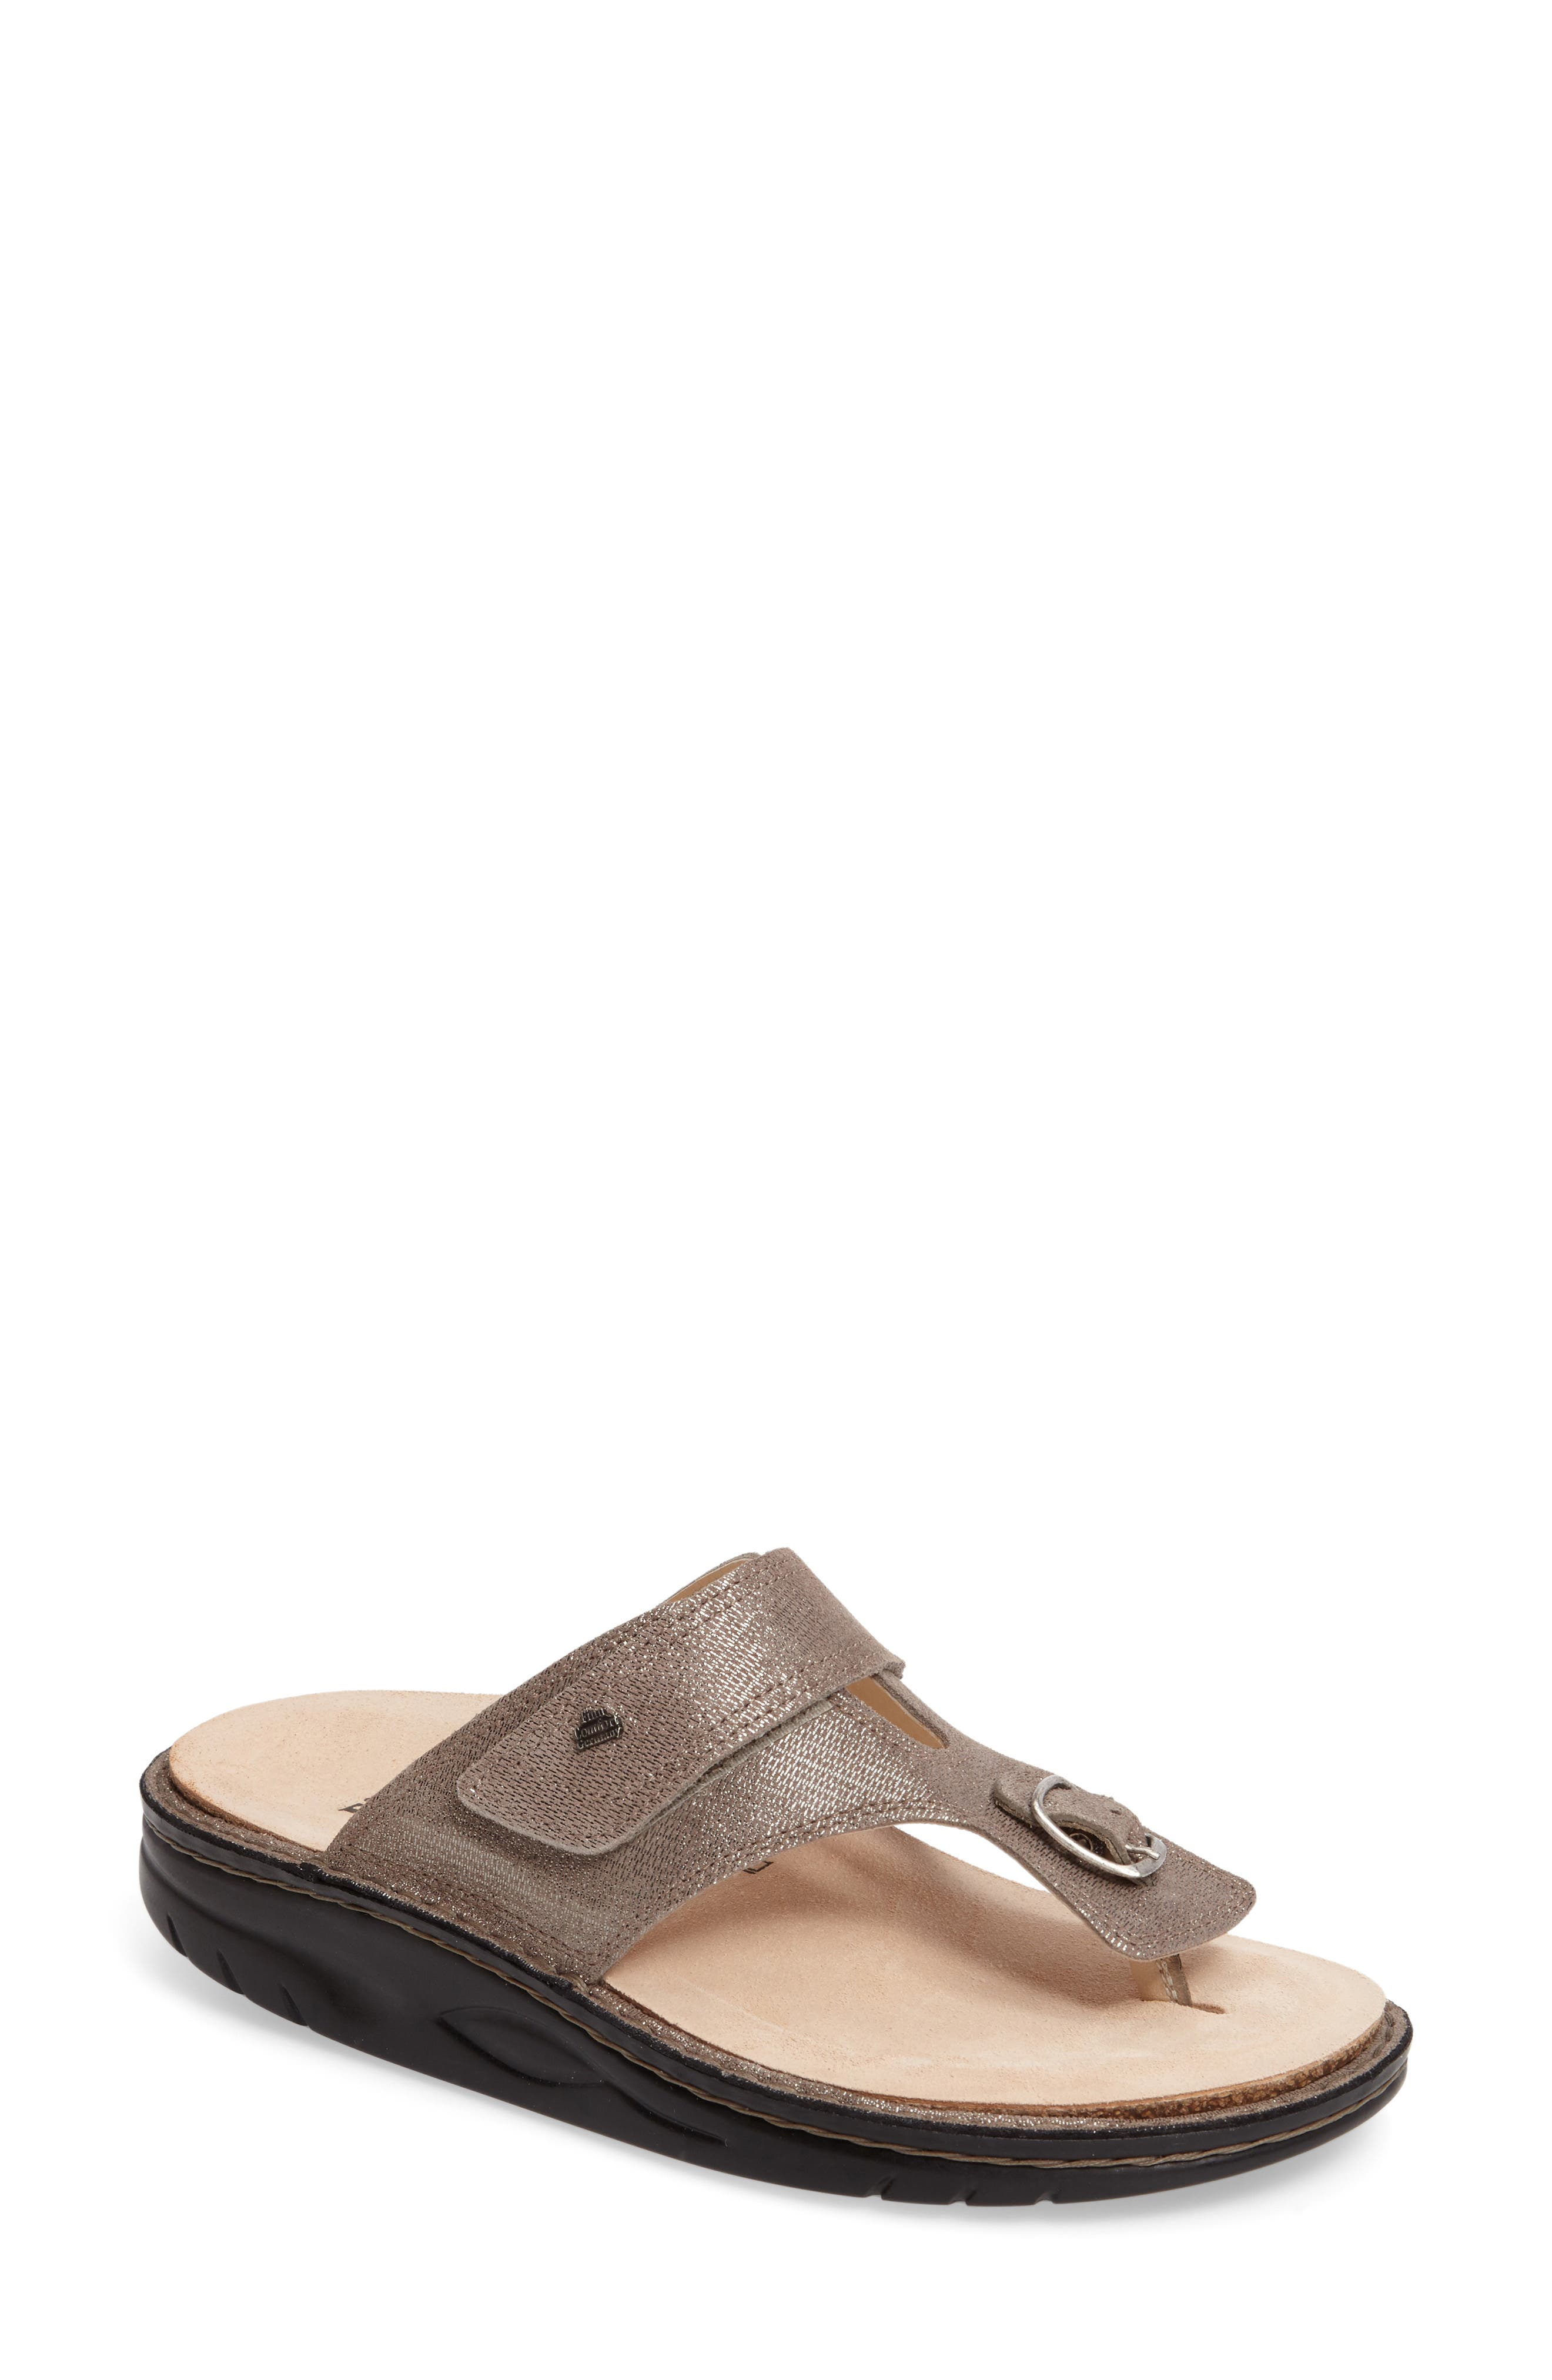 Calmasino Finnamic Flip Flop,                             Main thumbnail 1, color,                             FANGO LEATHER